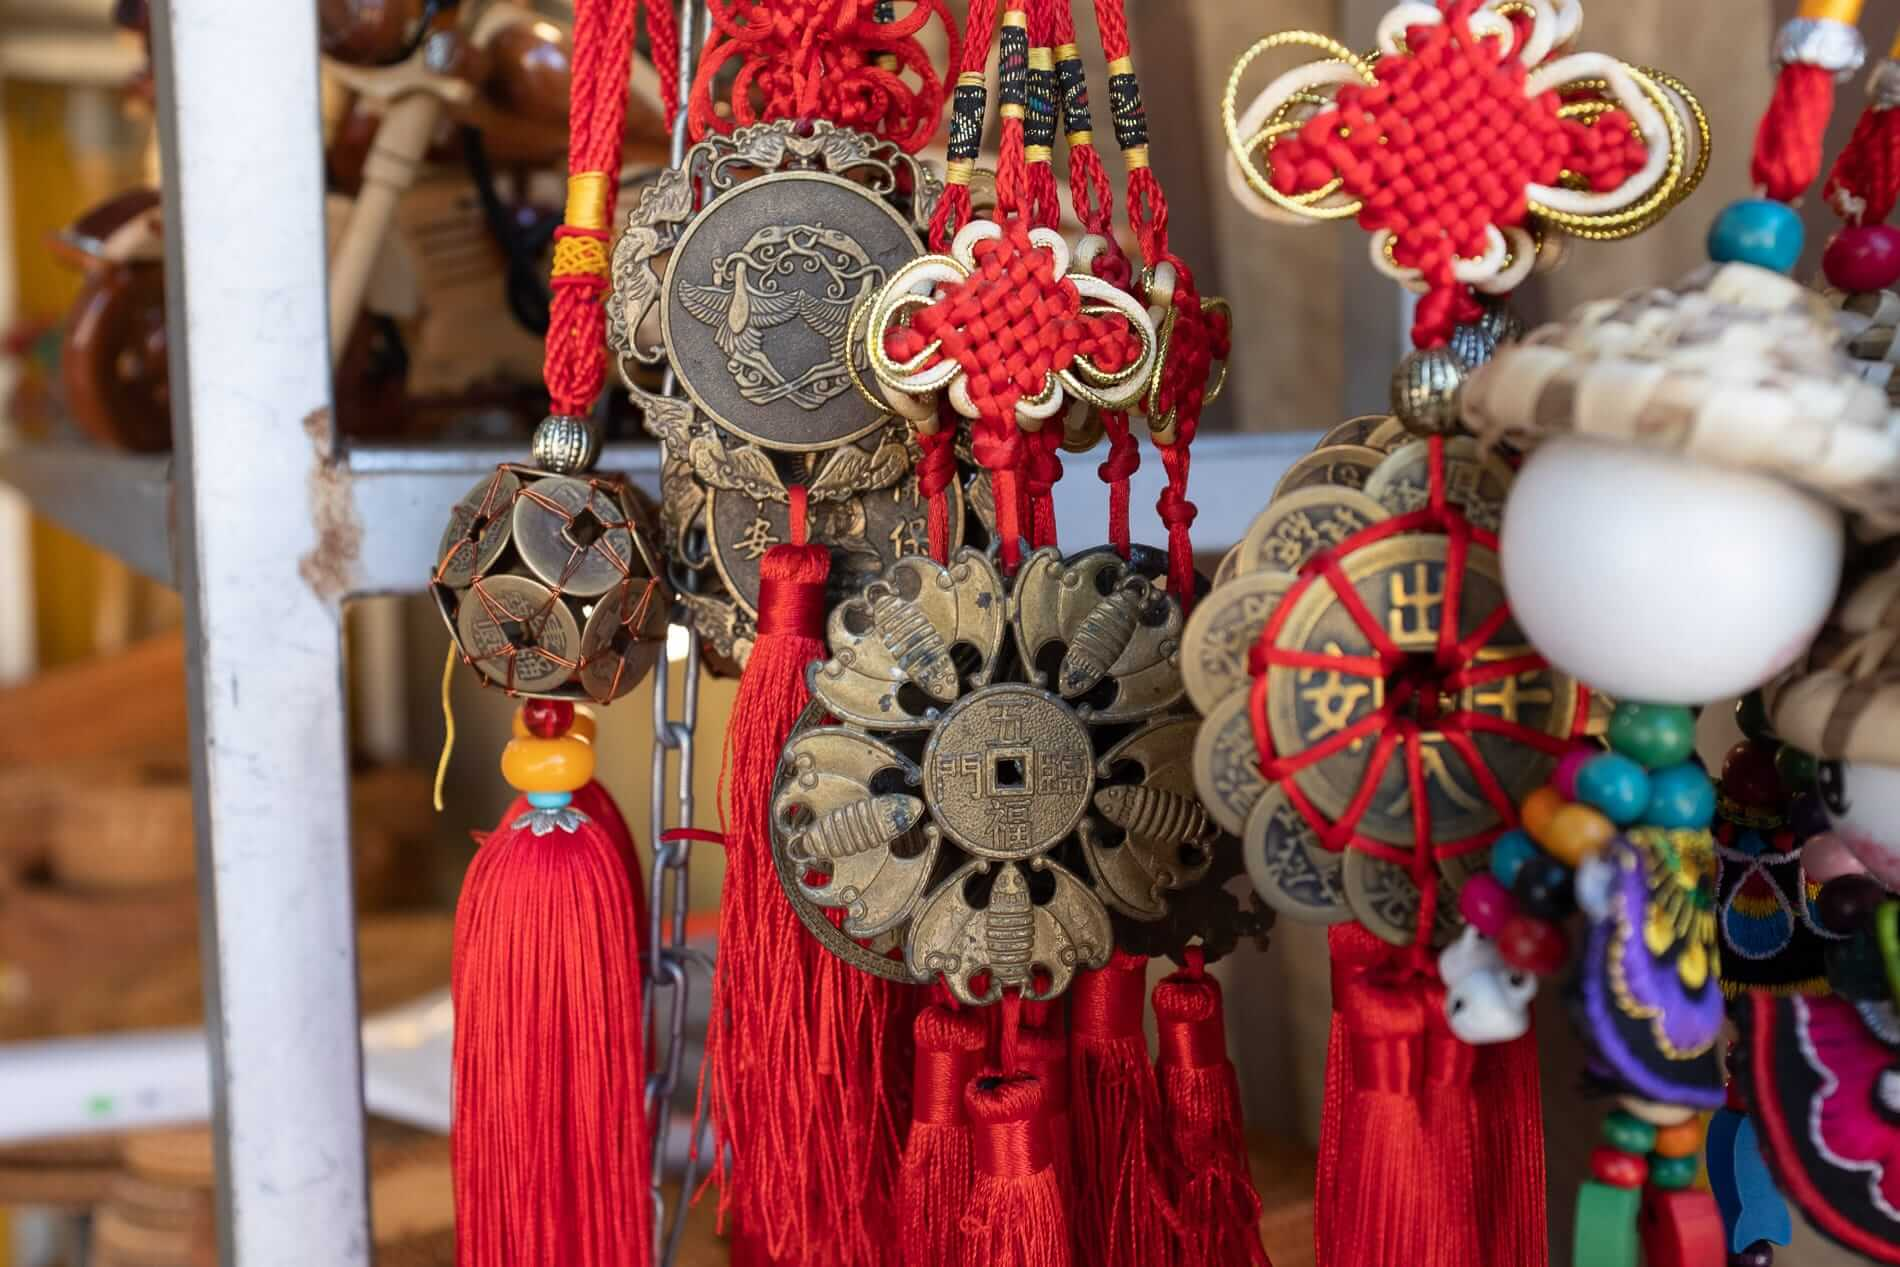 the best time to visit Hoi An is when Tet ornaments are displayed during Tet celebration